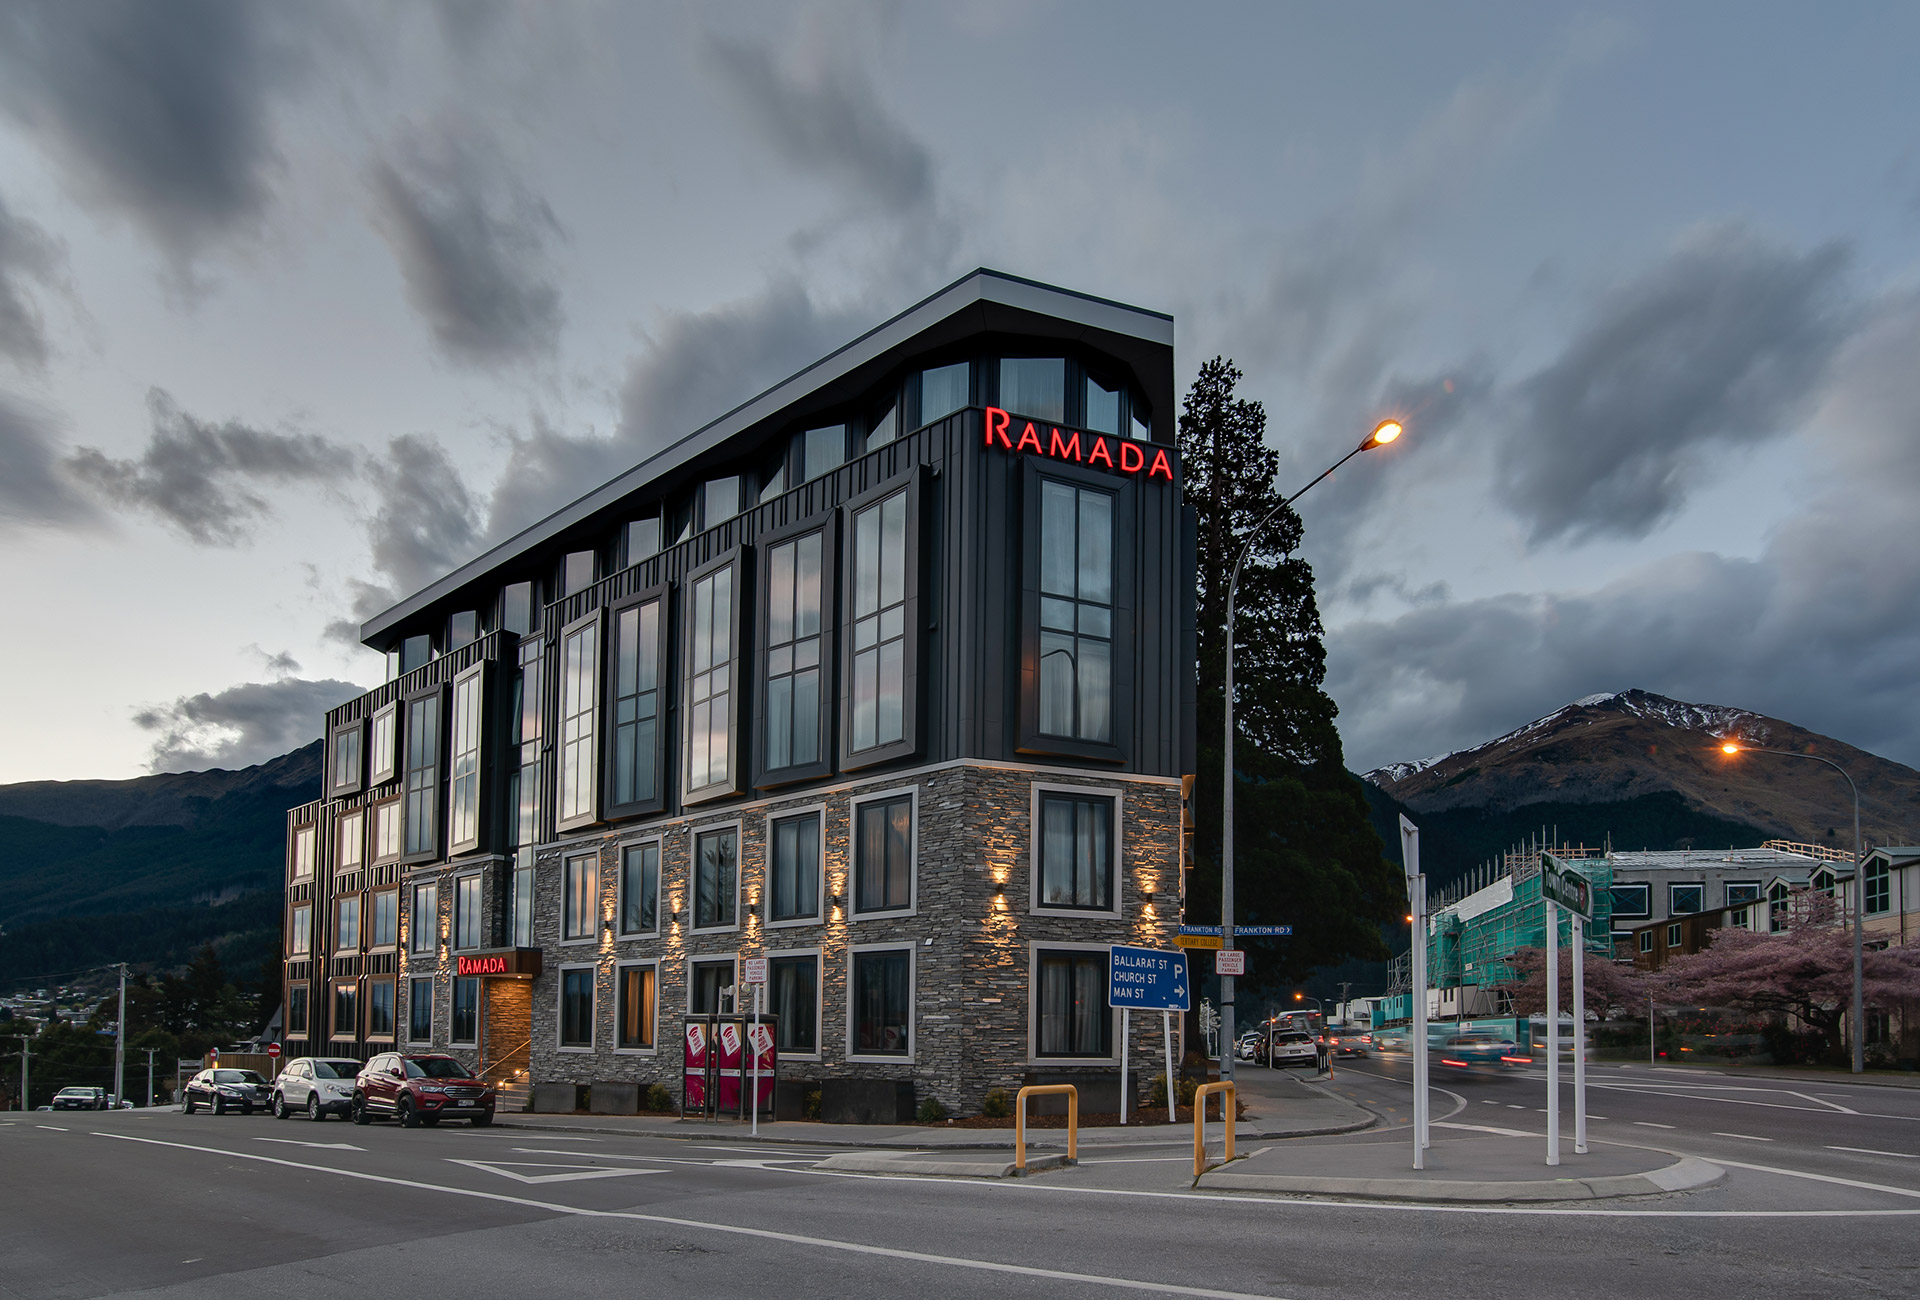 Ramada-Penthouse-and-externals-17